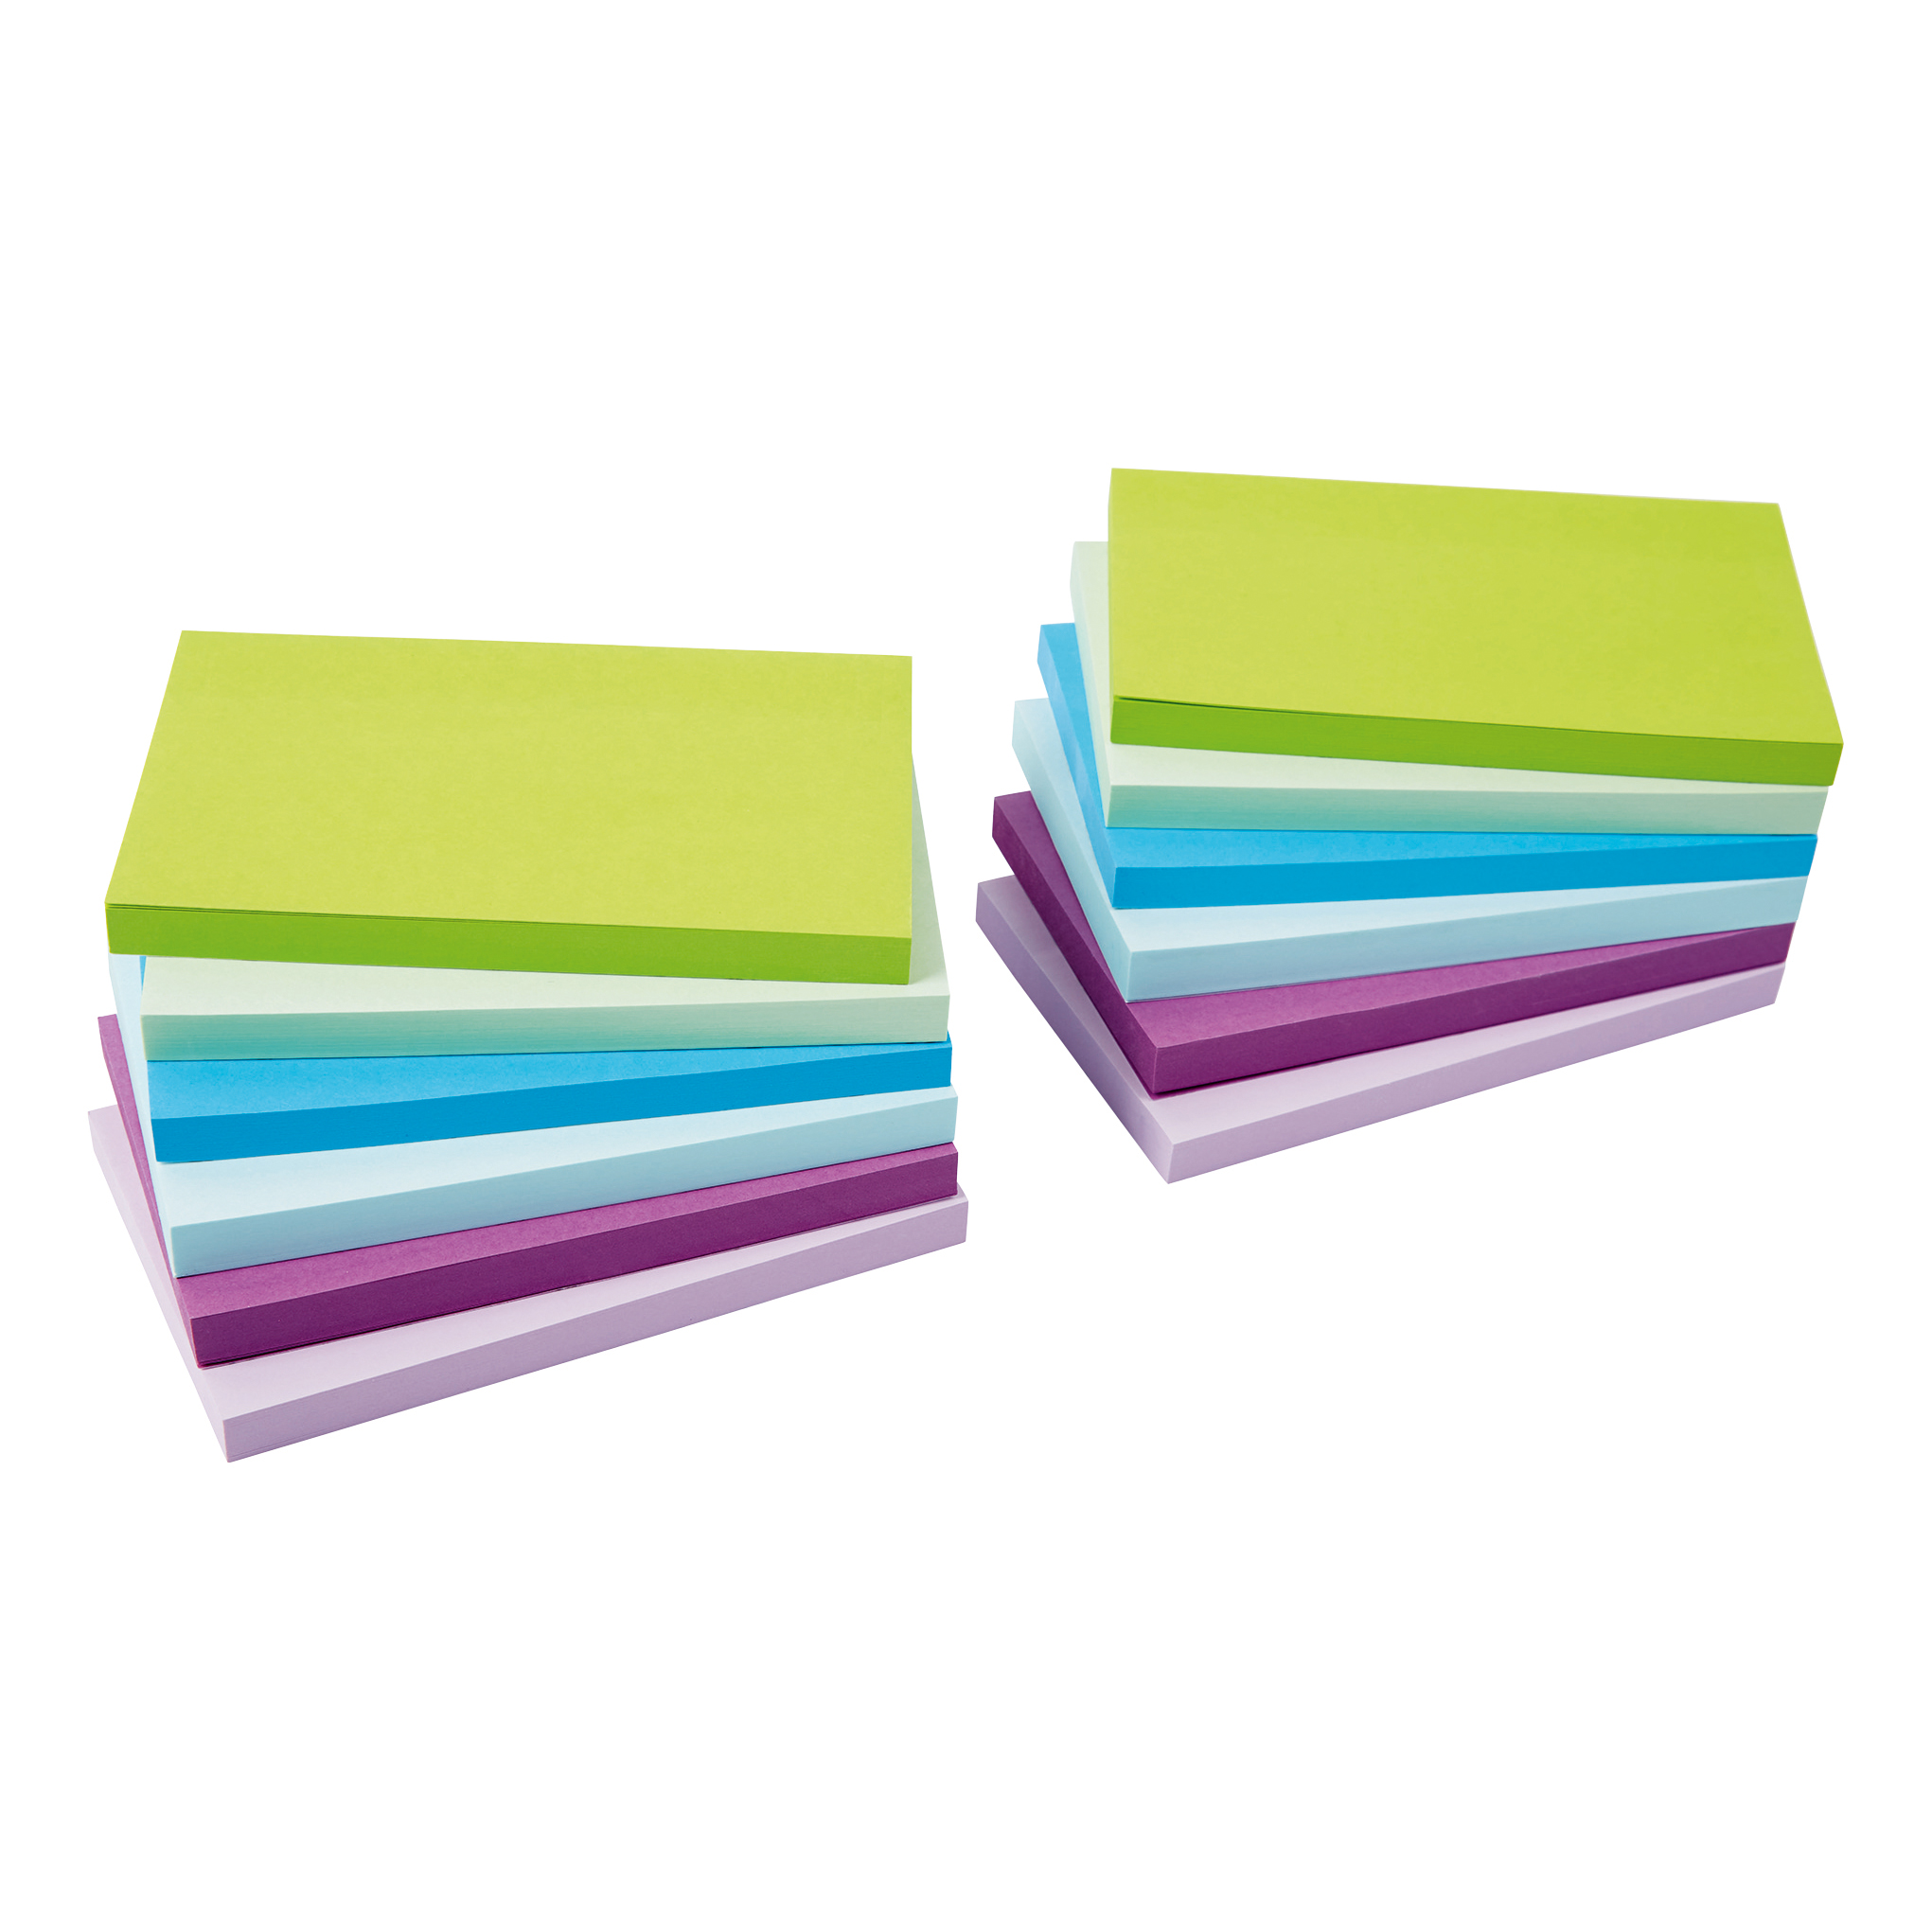 Self adhesive note paper 5 Star Office Re-Move Sticky Notes 76x127mm 6 Neon/Pastel Colours 100 Sheets per Pad Pack of 12